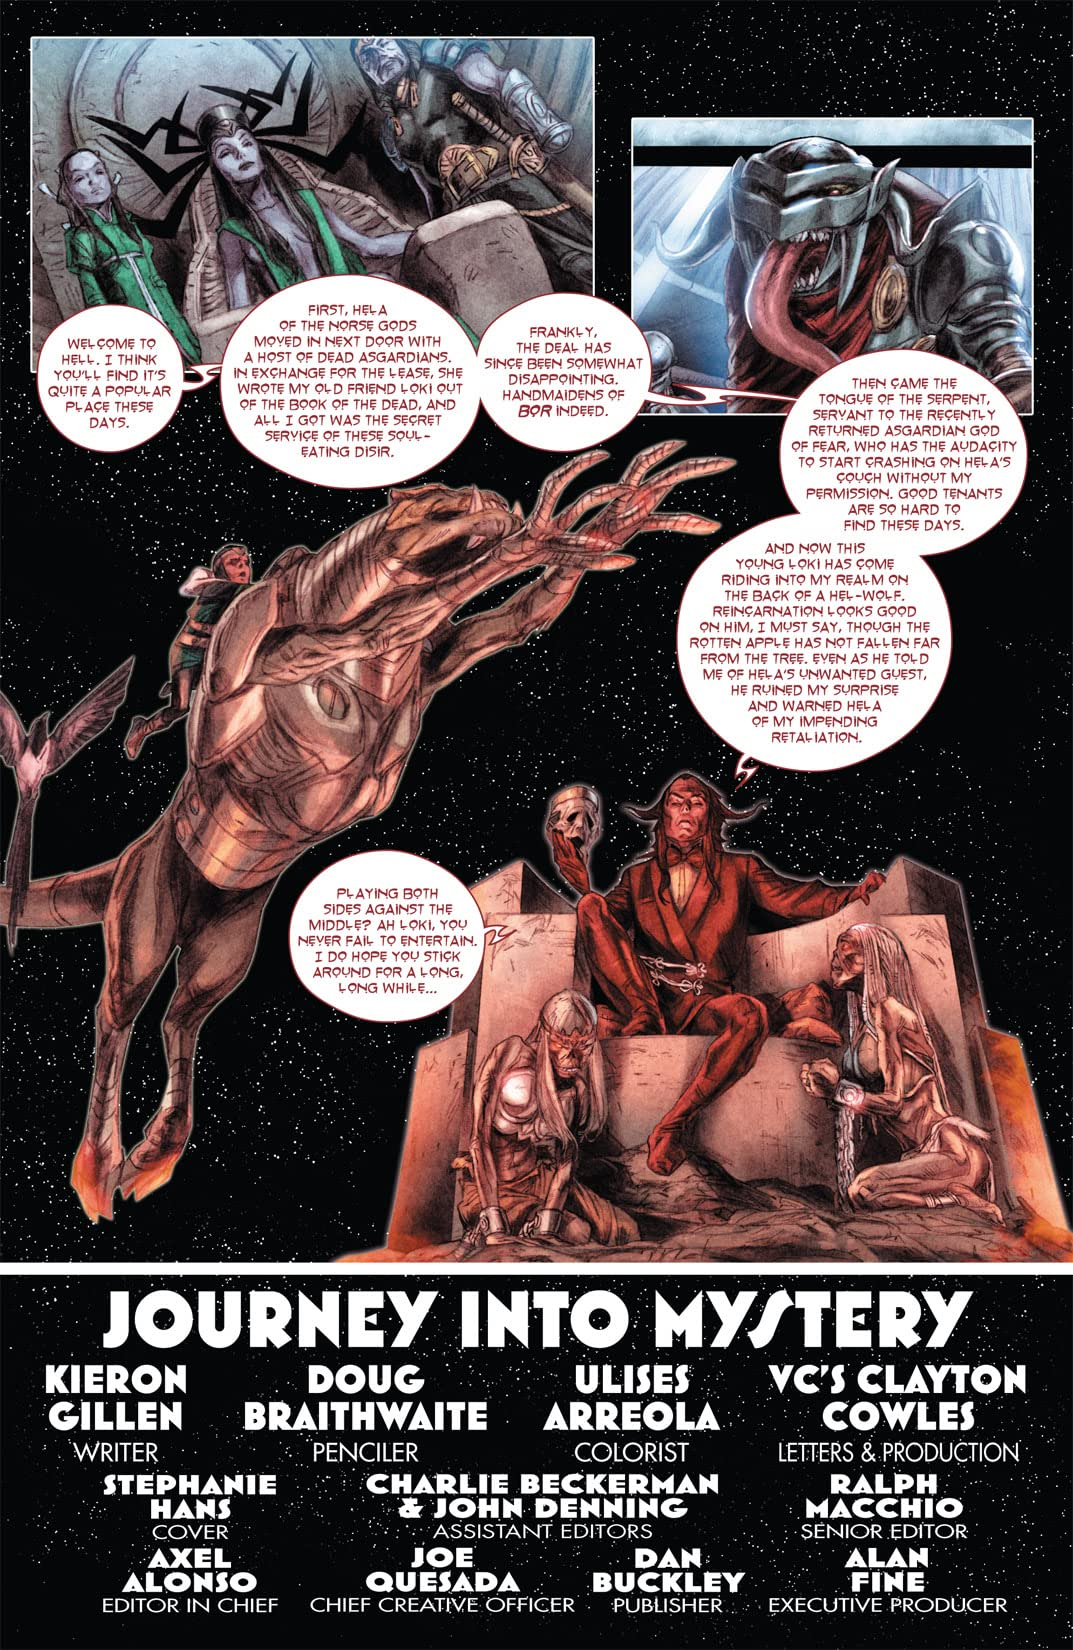 Journey Into Mystery #625